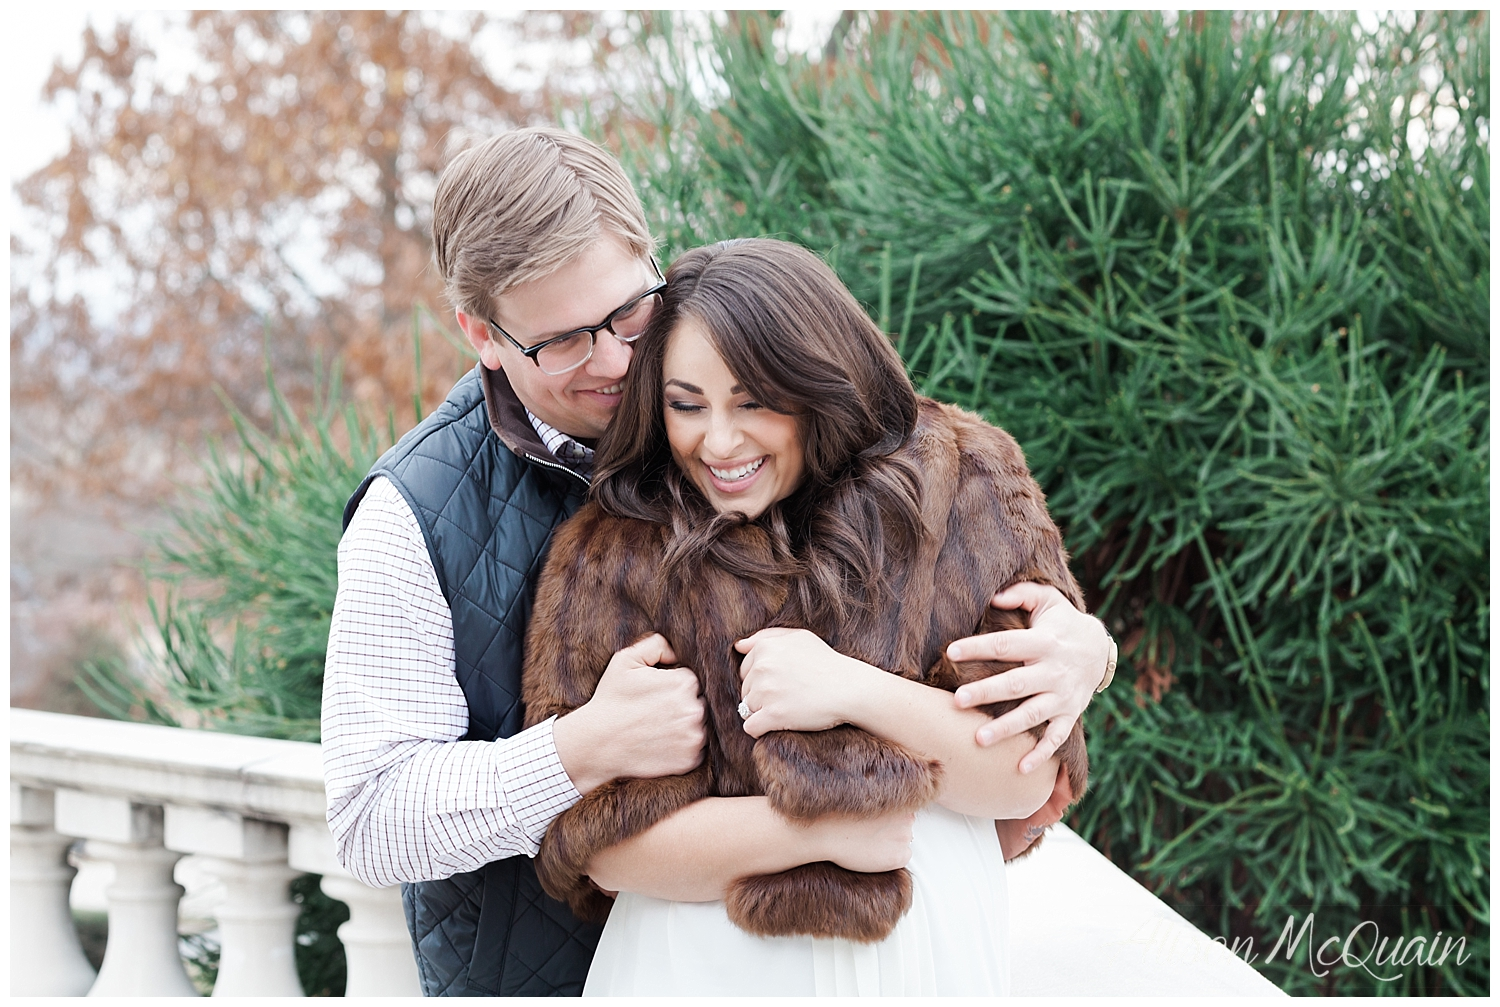 I brought my great-grandmother's furs along on this shoot...the cutest right?!